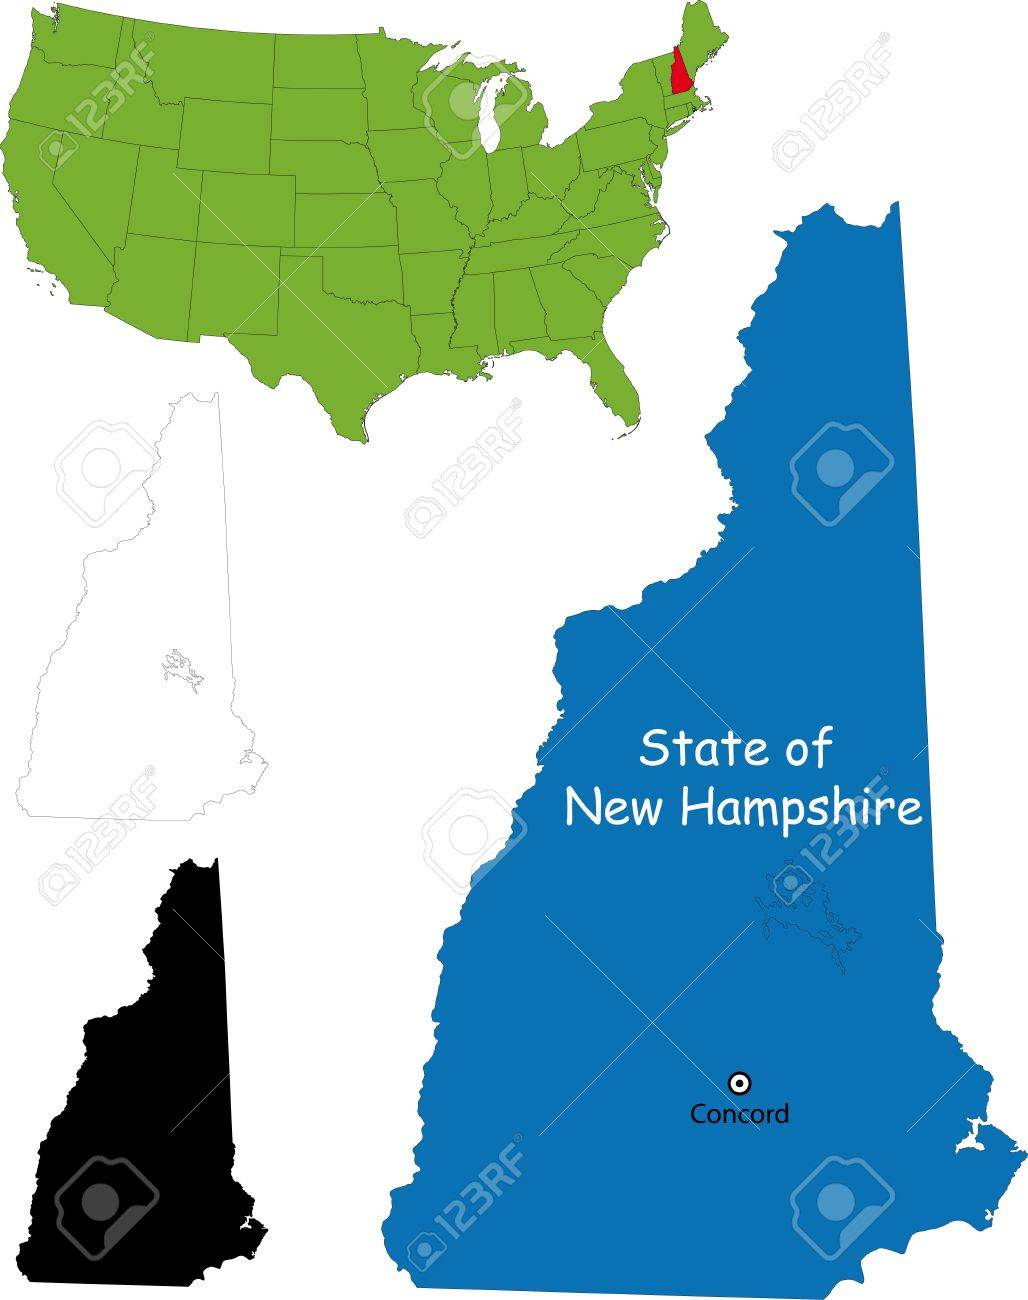 State of New Hampshire, USA Stock Vector - 21758072